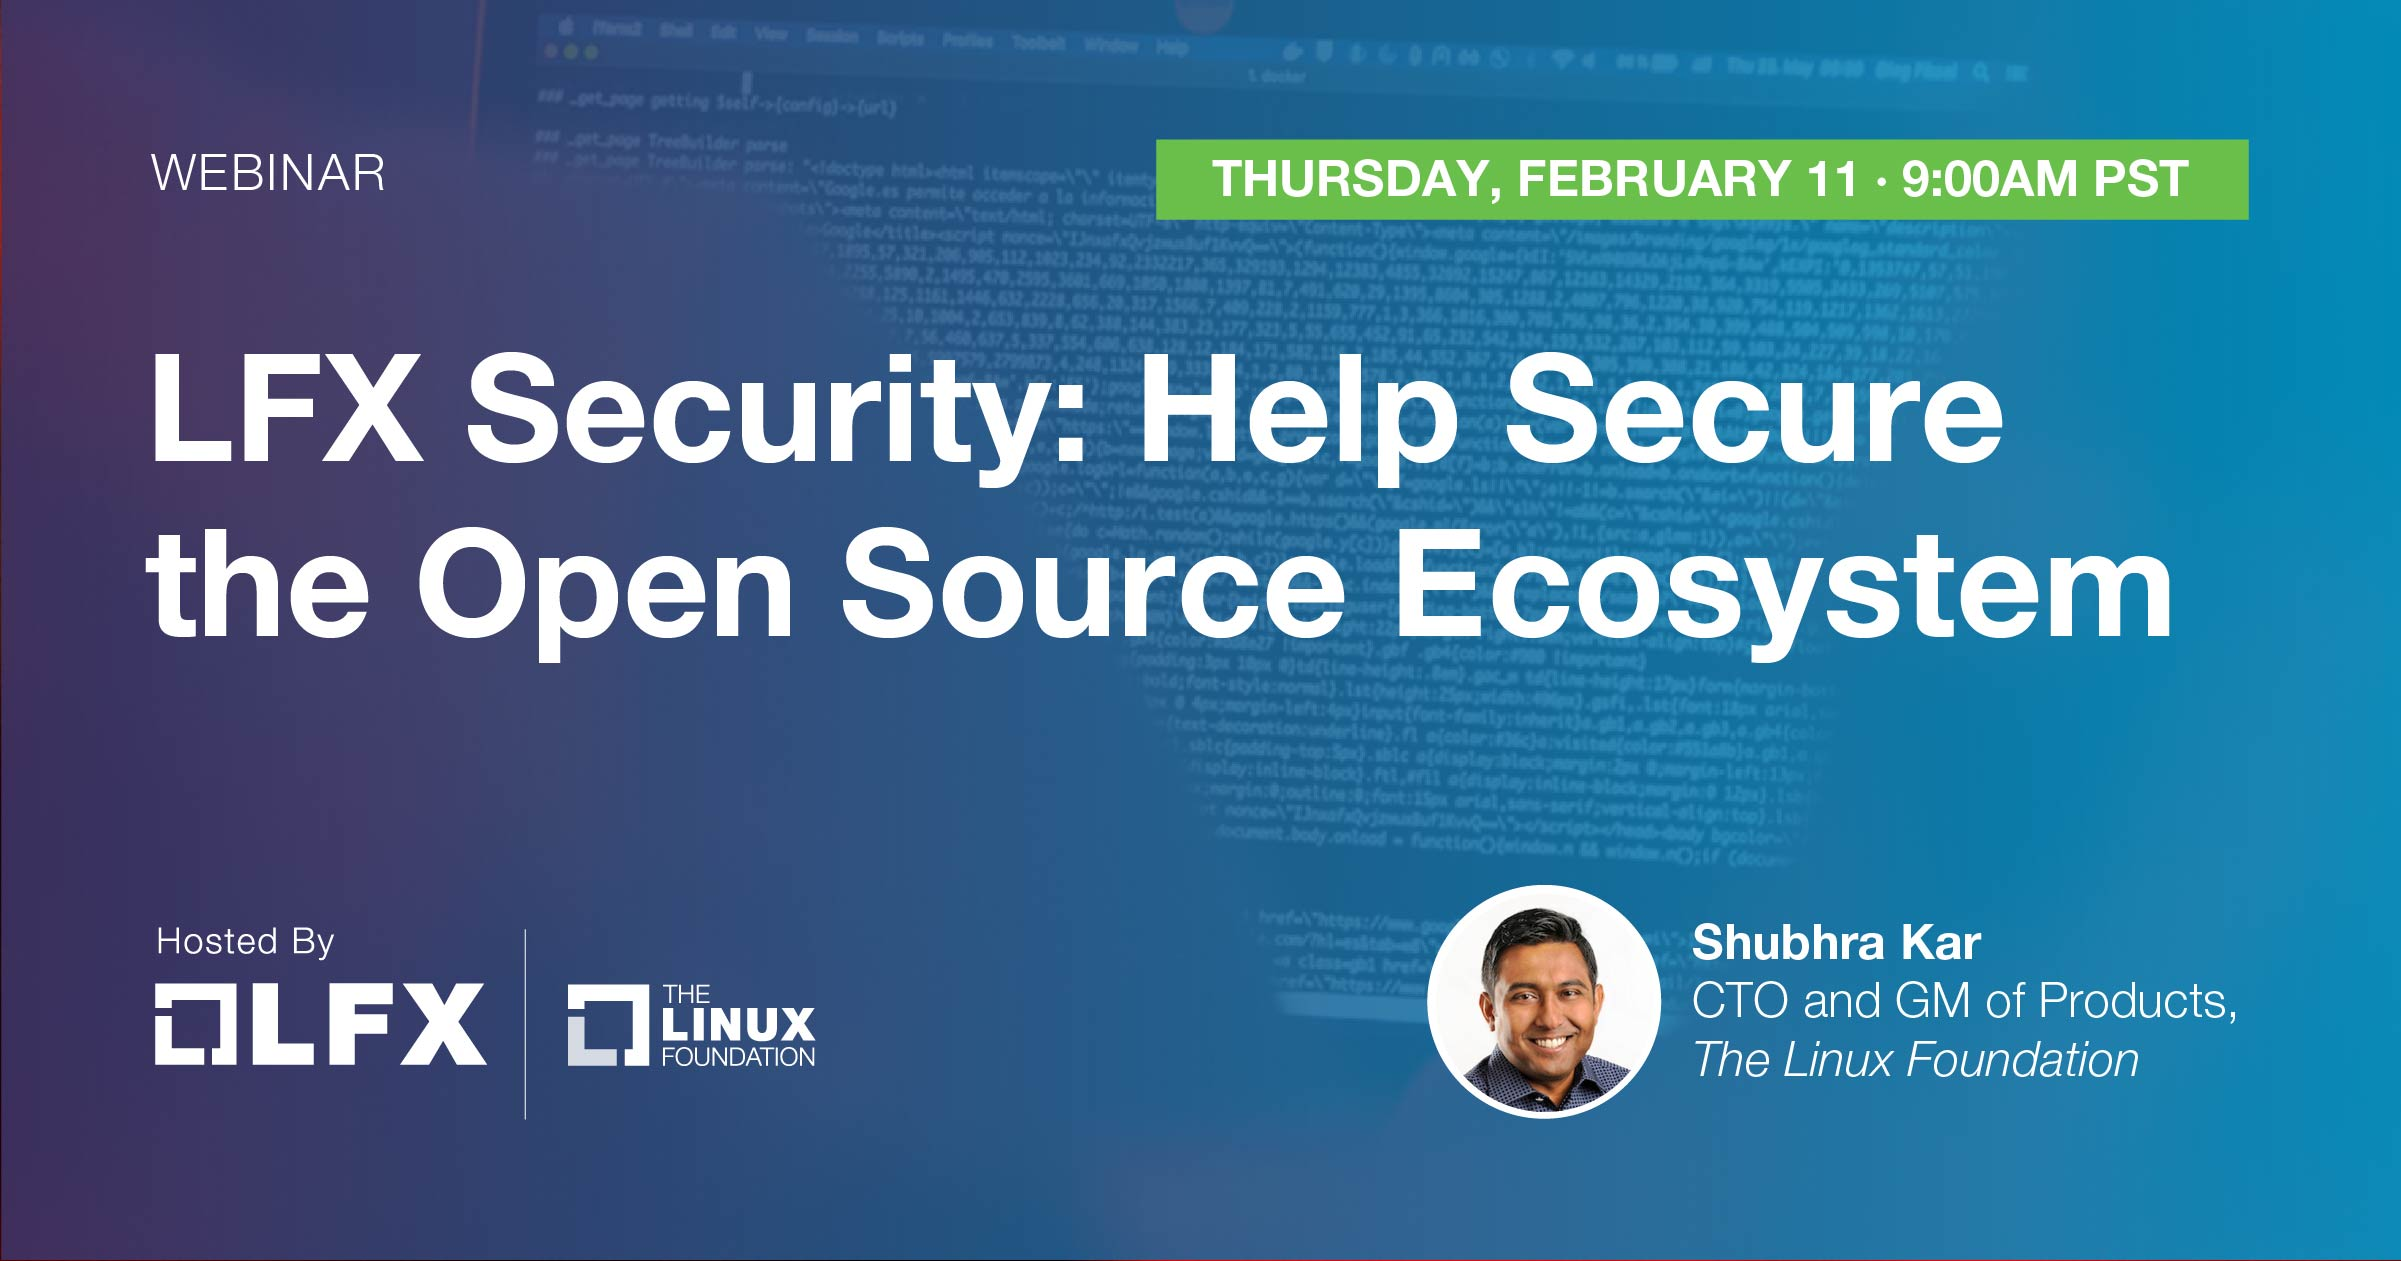 LFX Security: Help Secure the Open Source Ecosystem